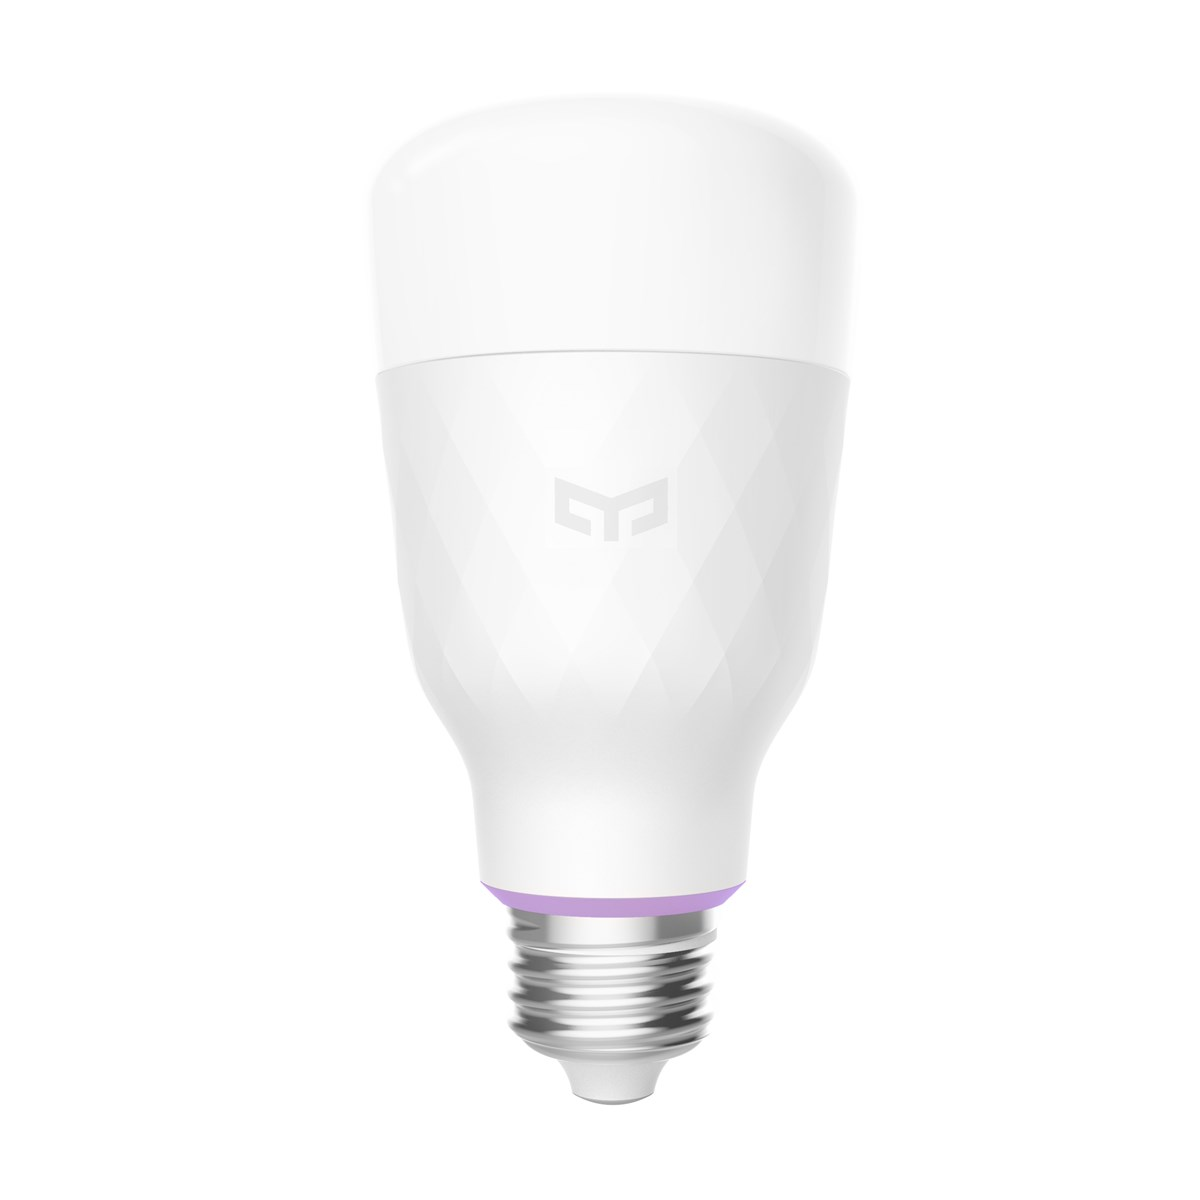 Xiaomi Yeelight YLDP06YL E26 E27 10W RGBW WiFi APP Smart LED Bulb Work With Amazon Alexa AC100-240V Coupon: BEYEEBULB CN $14.99